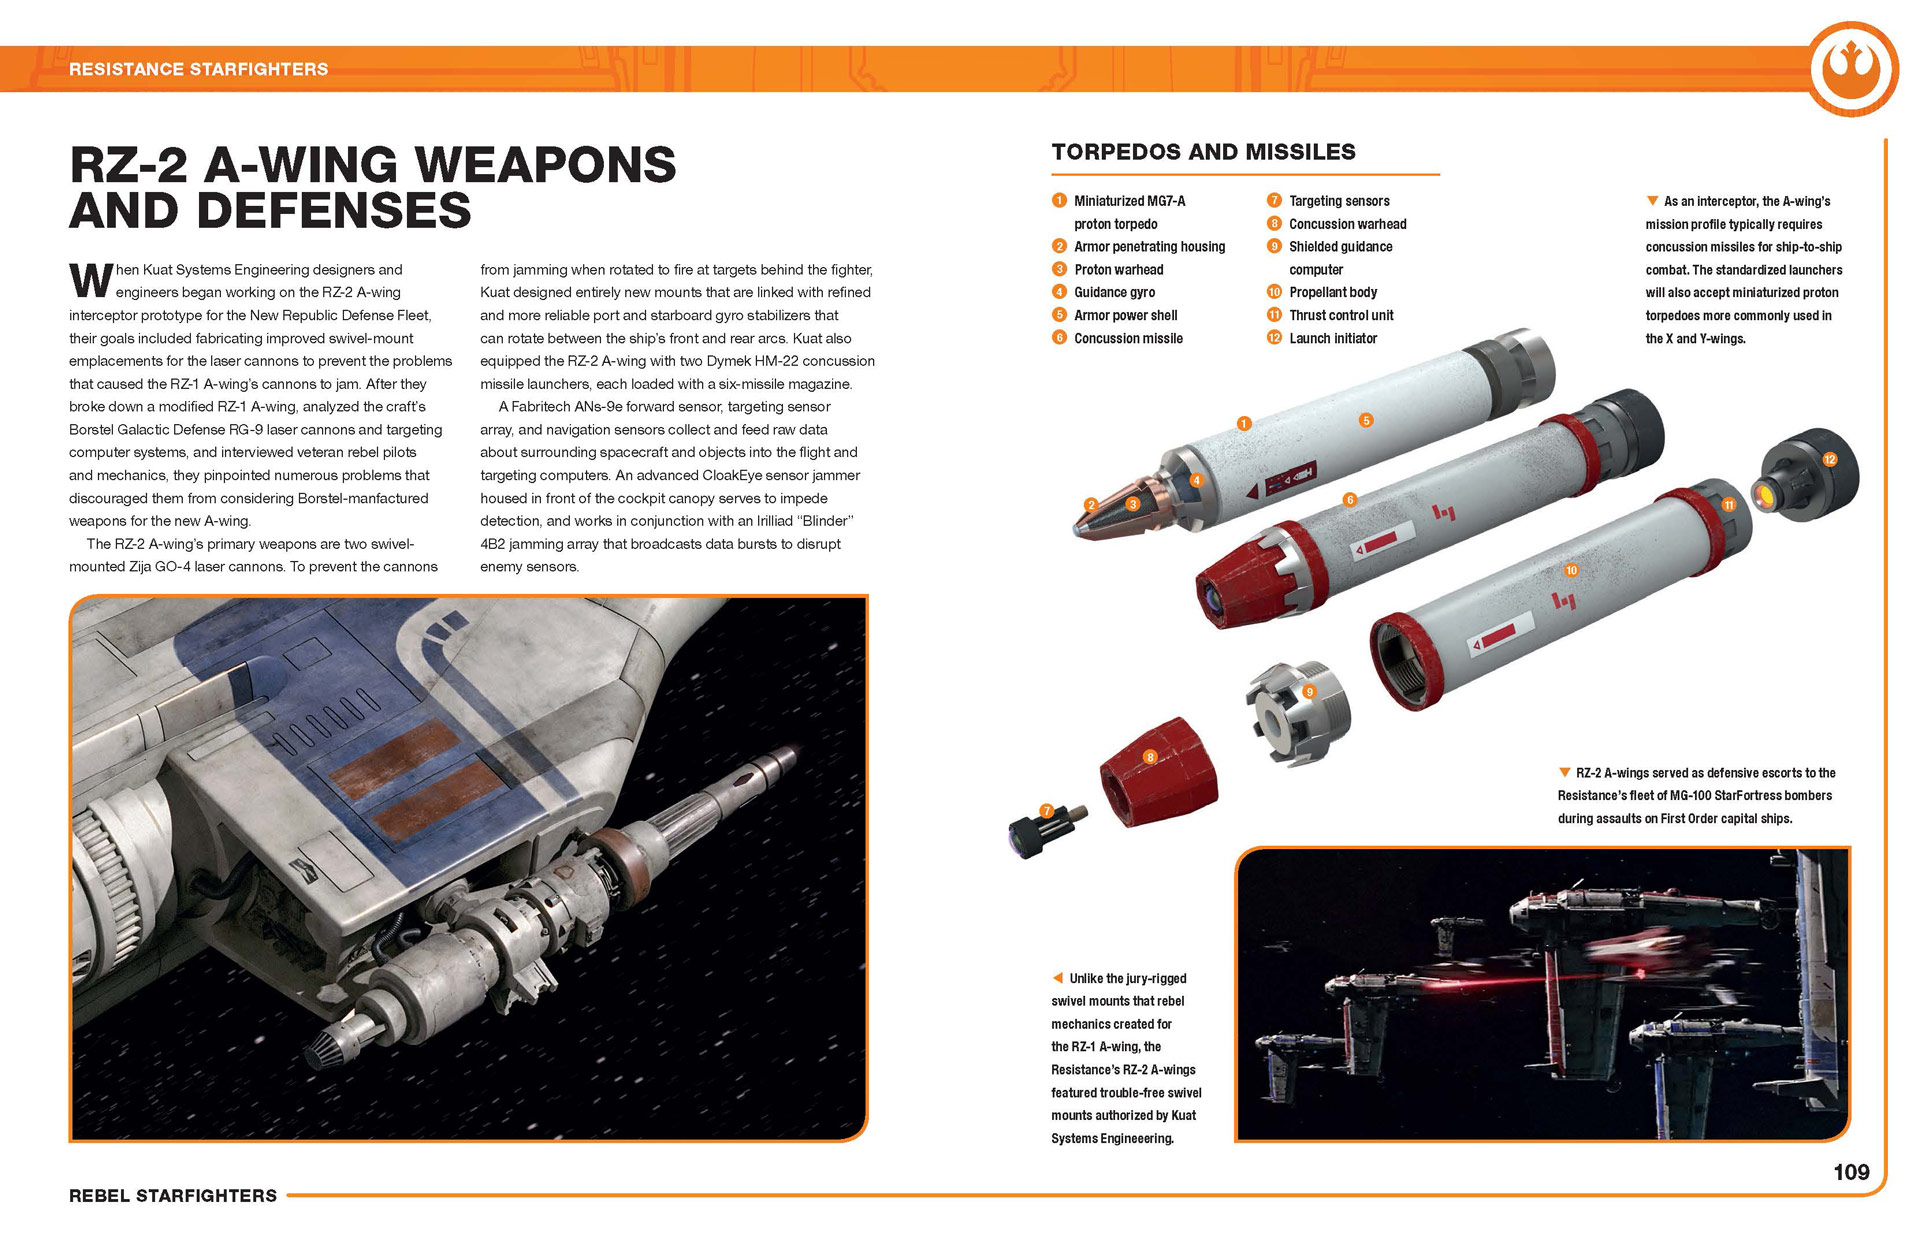 RZ-2 A-Wing Weapon Defenses